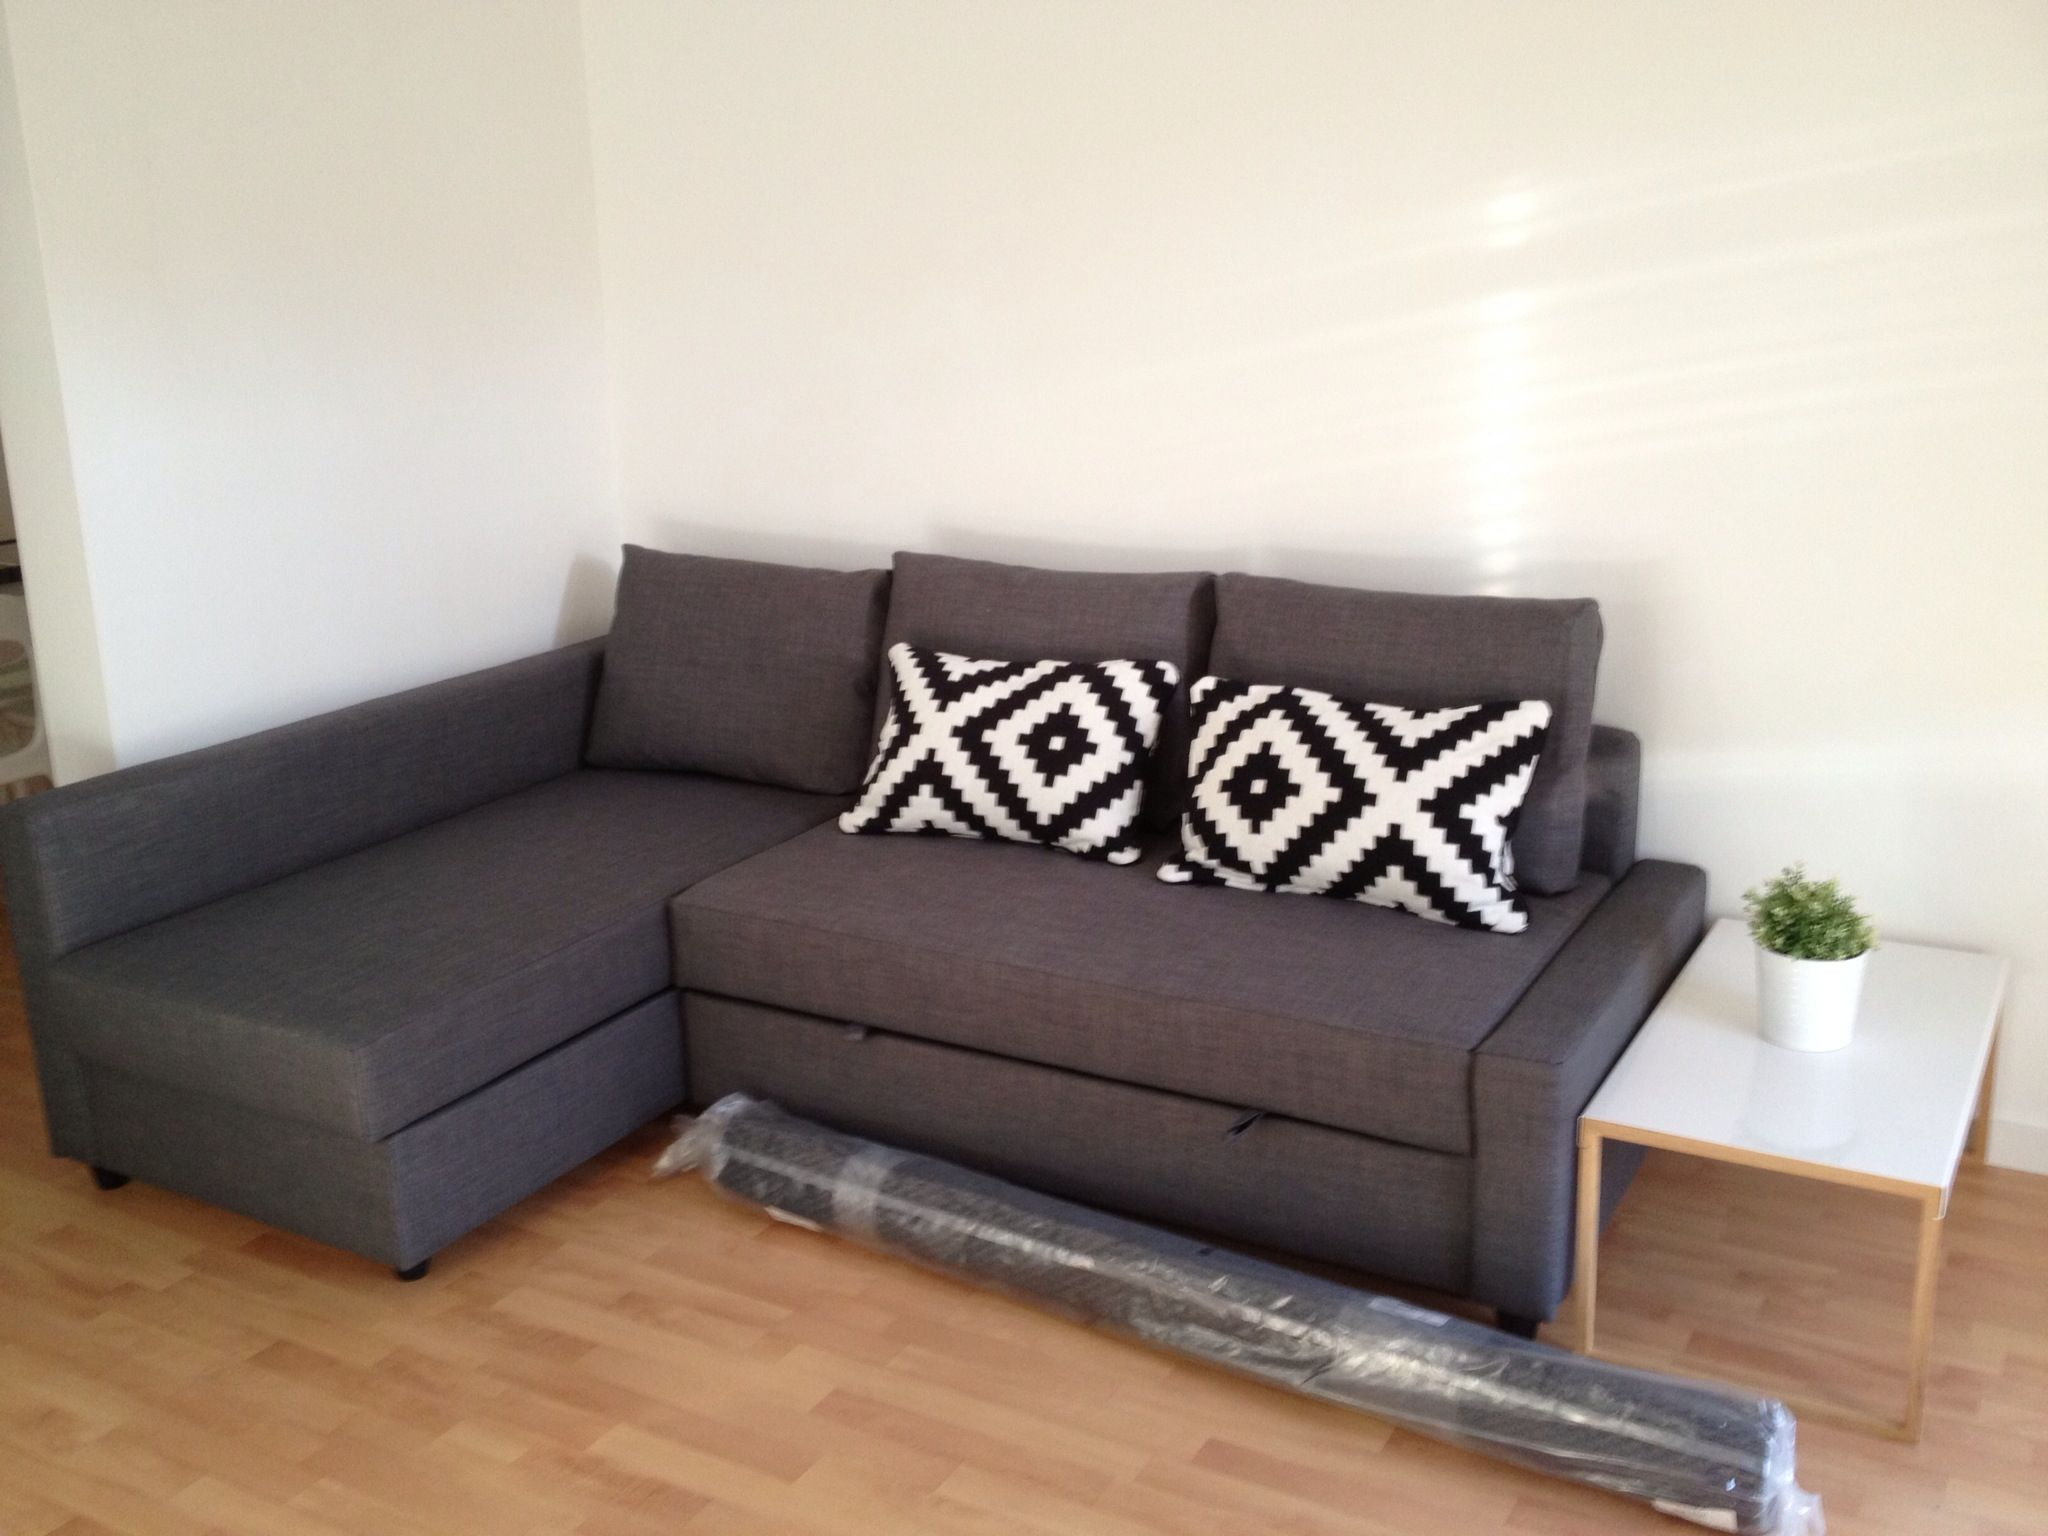 Ikea Mesas De Centro Salon Calle Provenza Work In Progress Sofa Cama Friheten De